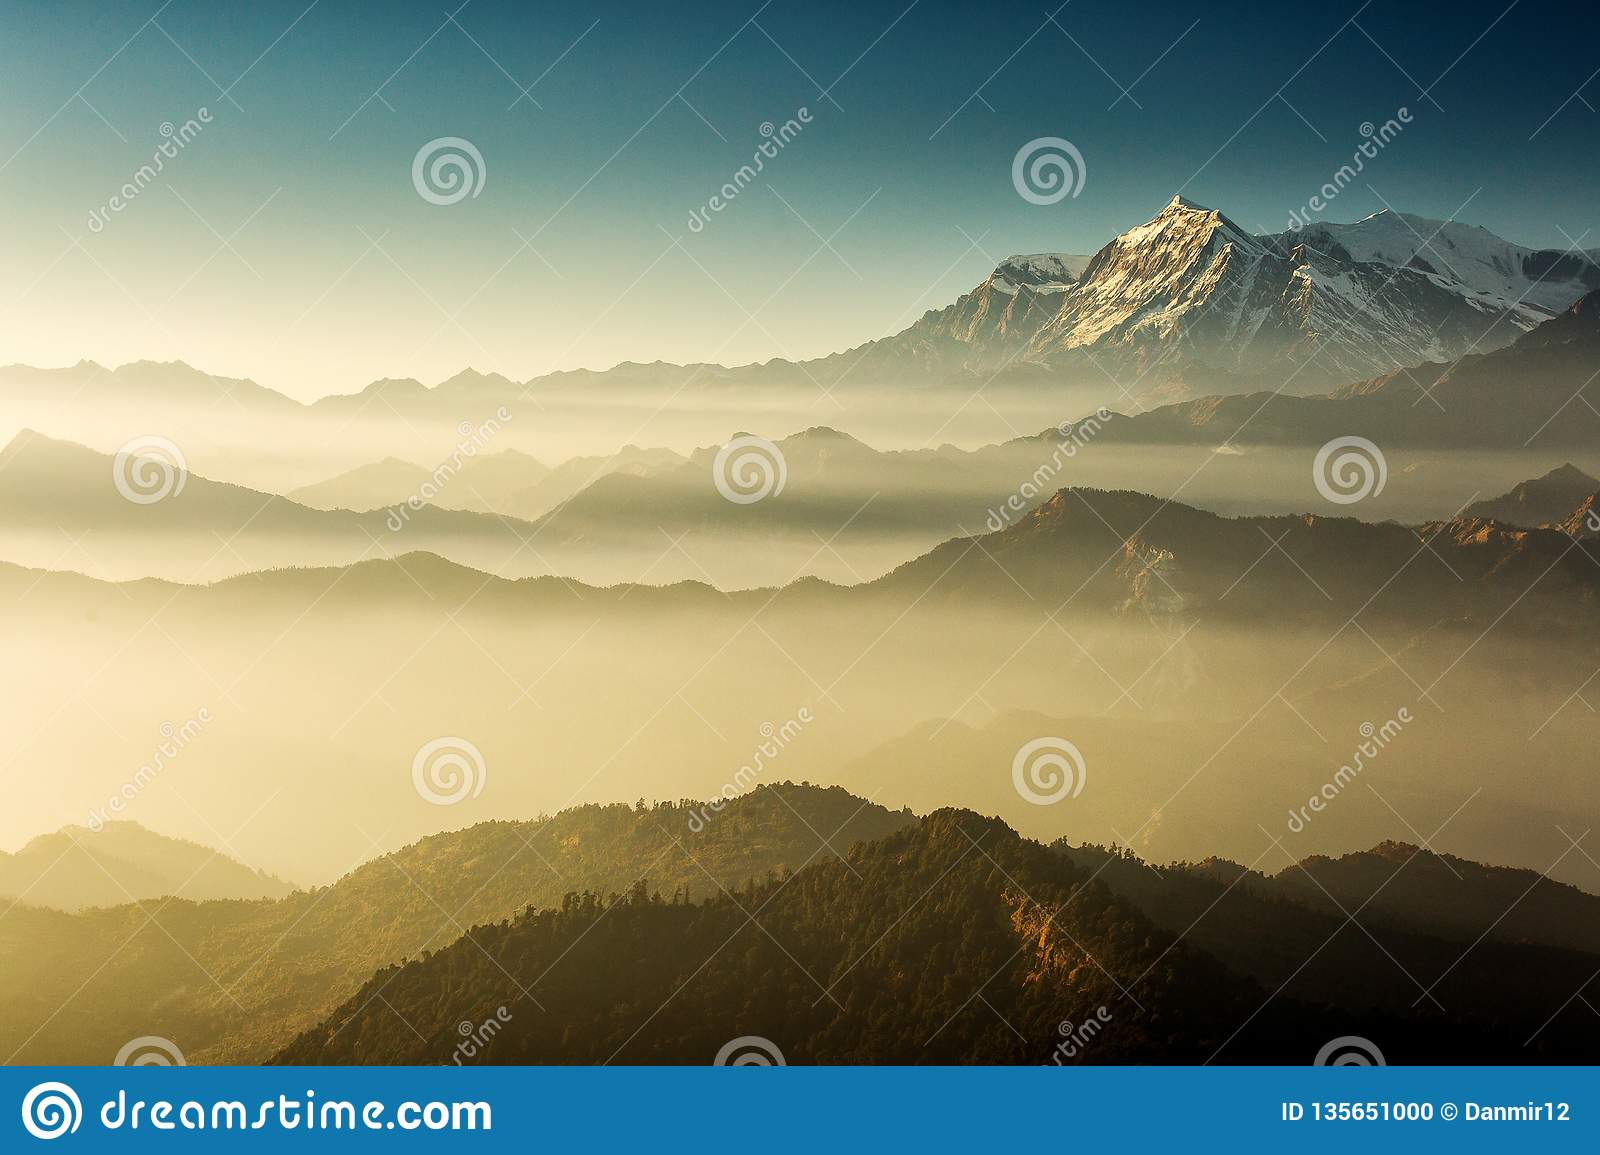 Beautiful view at Poon Hill with Dhaulagiri Peaks in background at sunset. Himalaya Mountains, Nepal